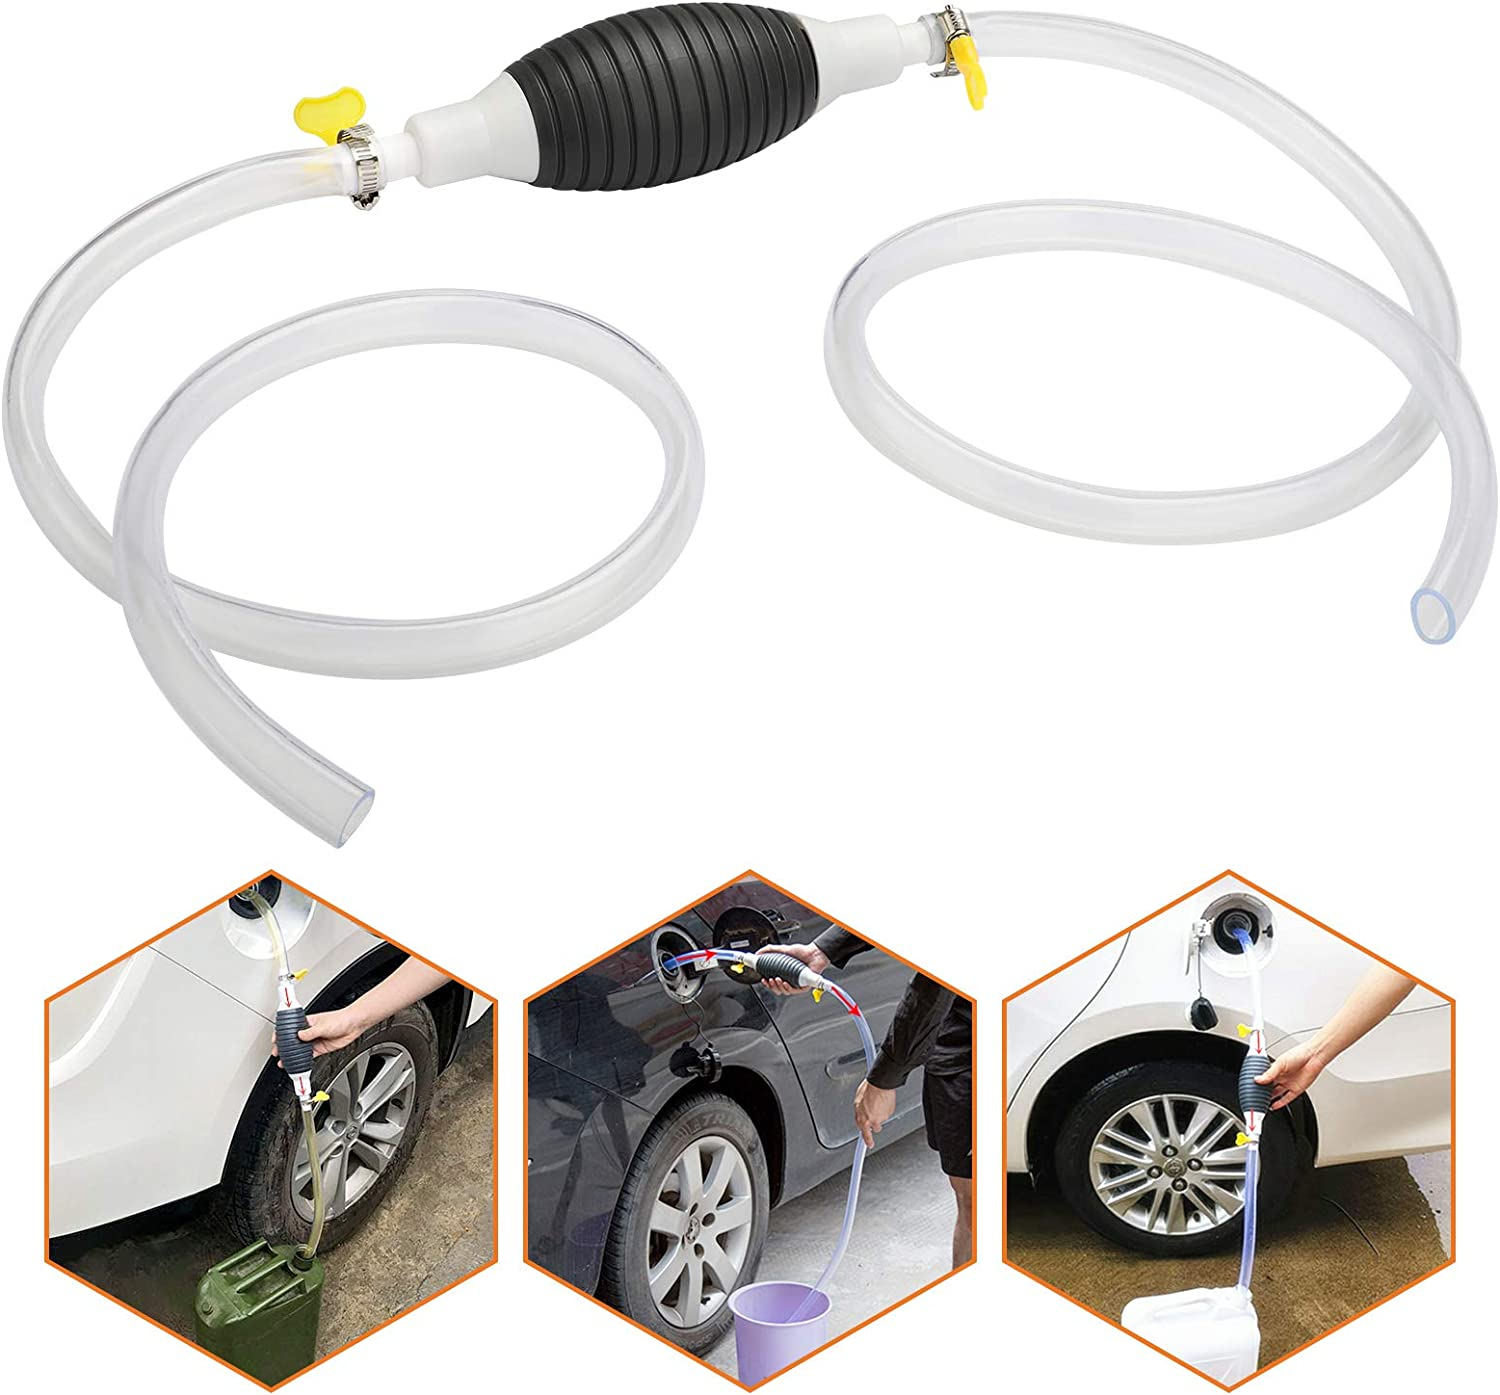 Linkstyle Hand Transfer Pump High Flow Siphon Hand Fuel Pump Portable Manual Car Boat Fuel Transfer Mount for Gas Gasoline Petrol Diesel Oil Water Fish Tank Pool with 2M Siphon Hose